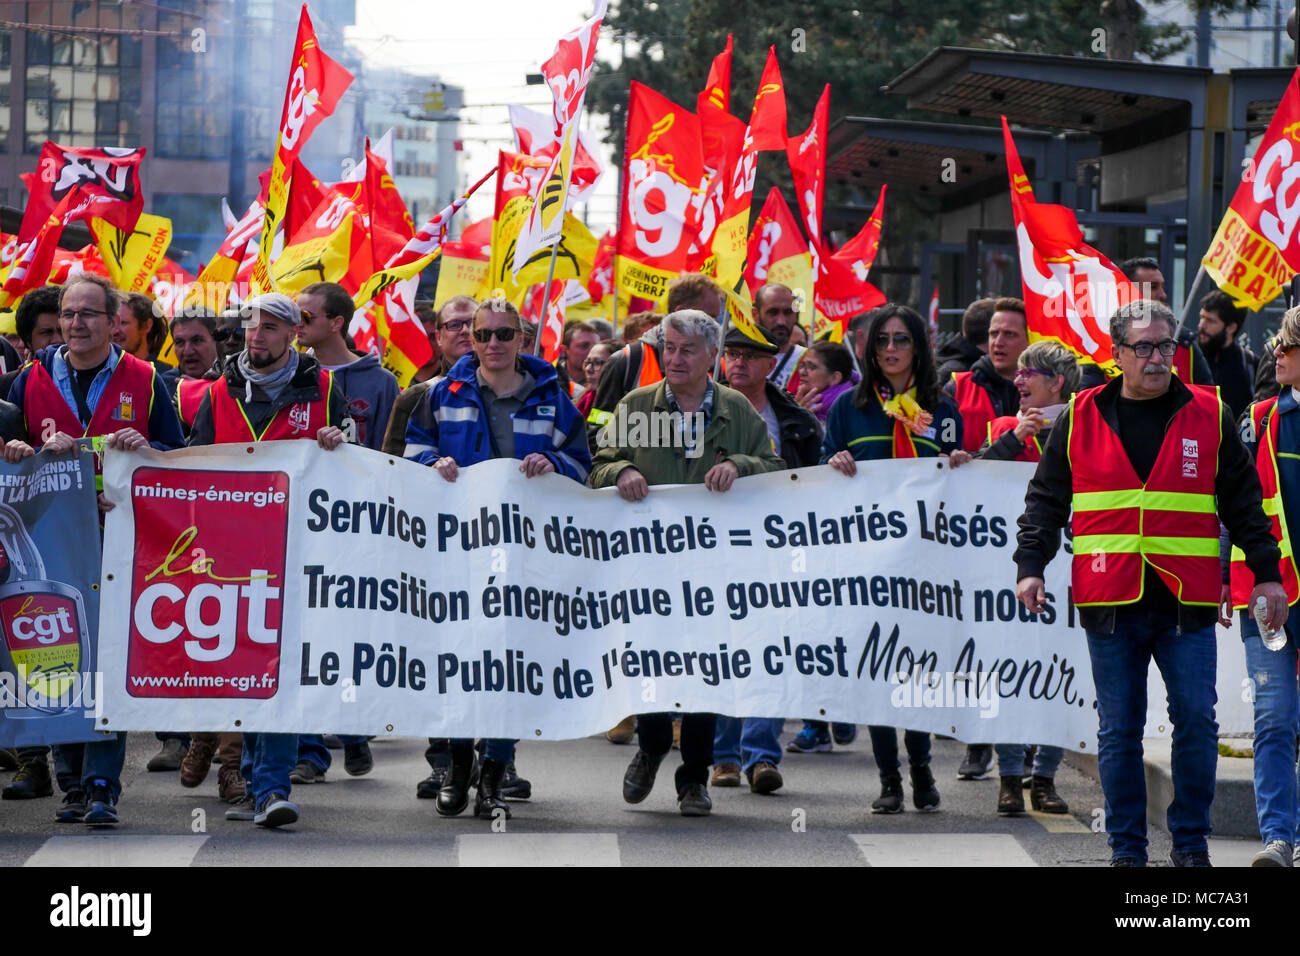 Lyon, France, 13th April 2018: Called by trade unions, SNCF employees are seen in Lyon (Central-Eastern France) on April 13, 2018 as they march in Part-Dieu area on the fifth day of action against status reform engaged by French Government.  Credit: Serge Mouraret/Alamy Live News - Stock Image